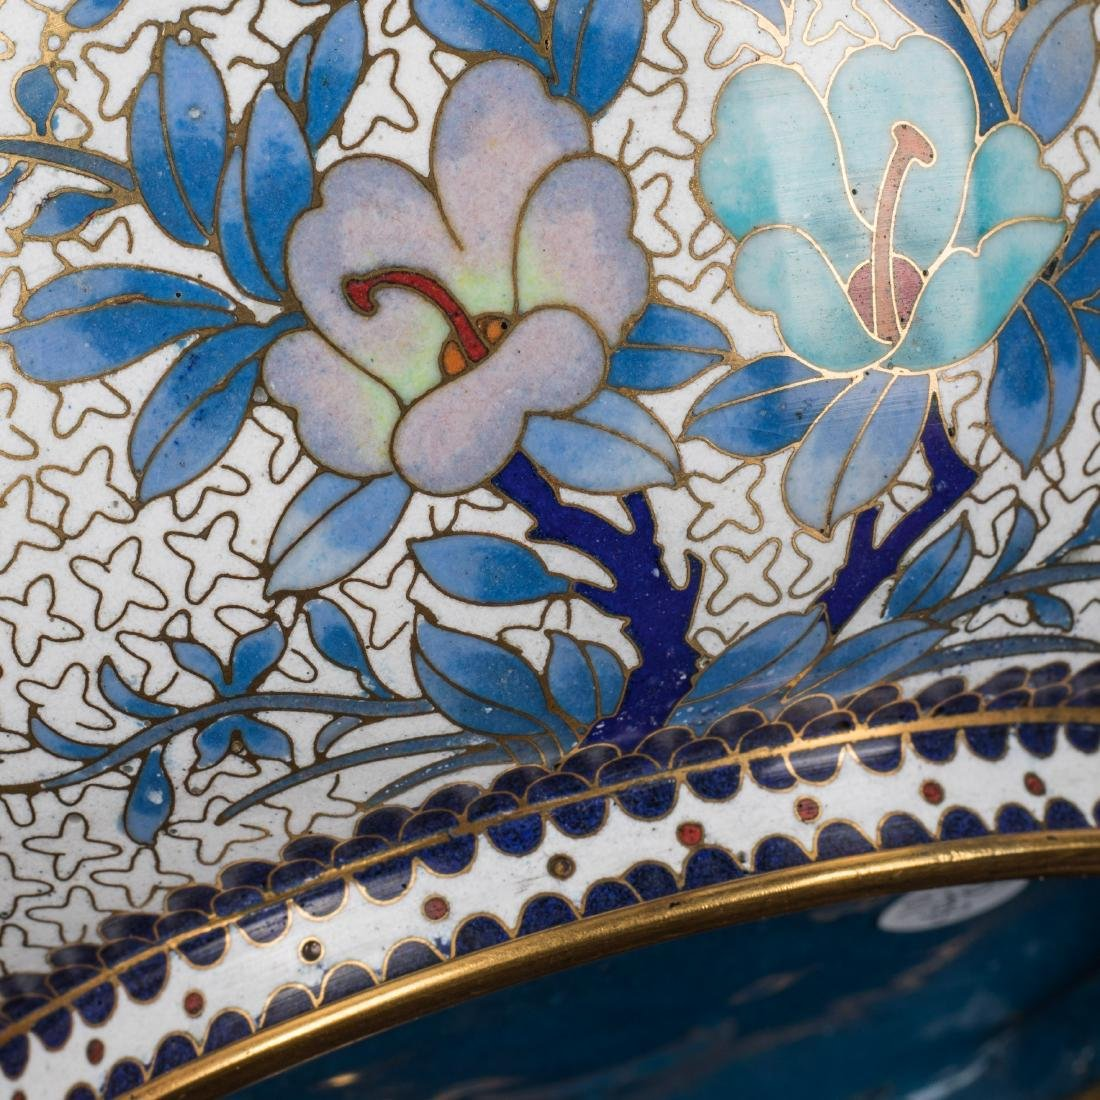 19th Antique Cloisonne Bowl - 6